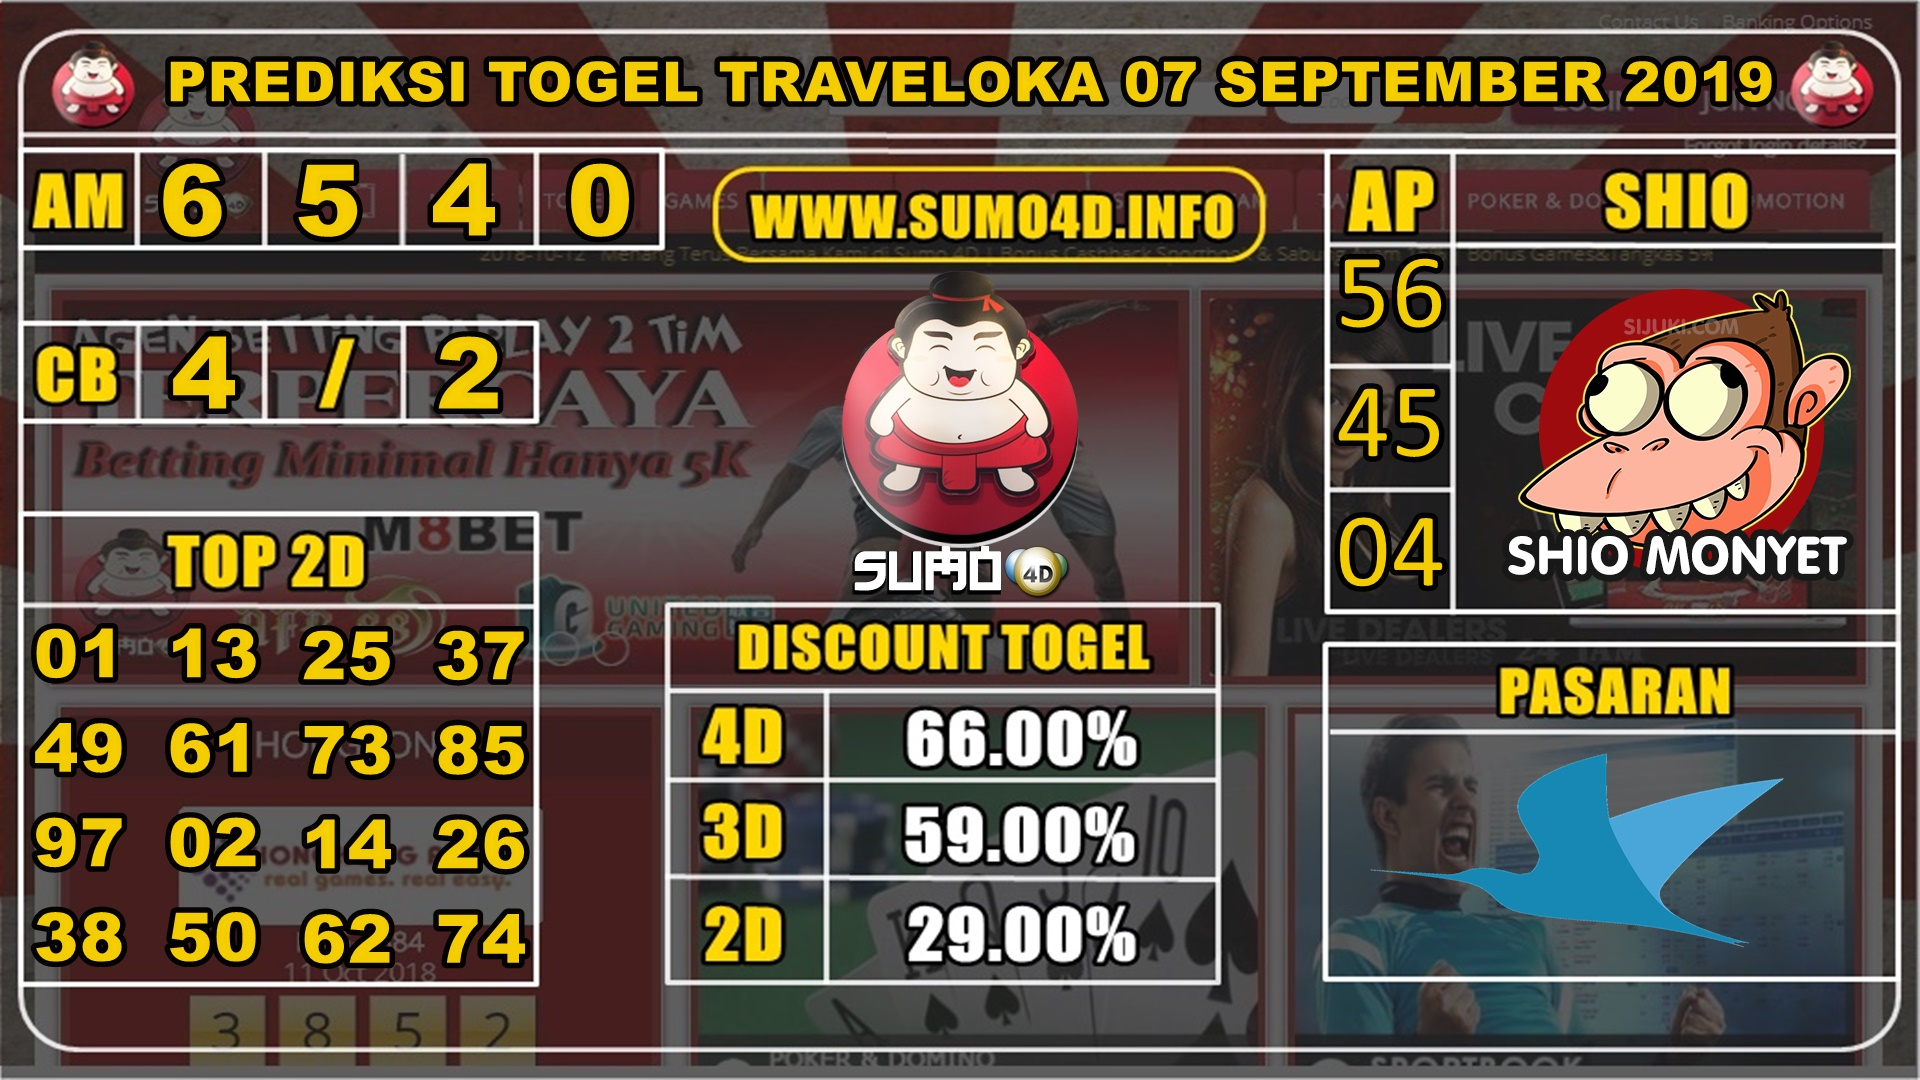 PREDIKSI TOGEL TRAVELOKA POOLS 07 SEPTEMBER 2019